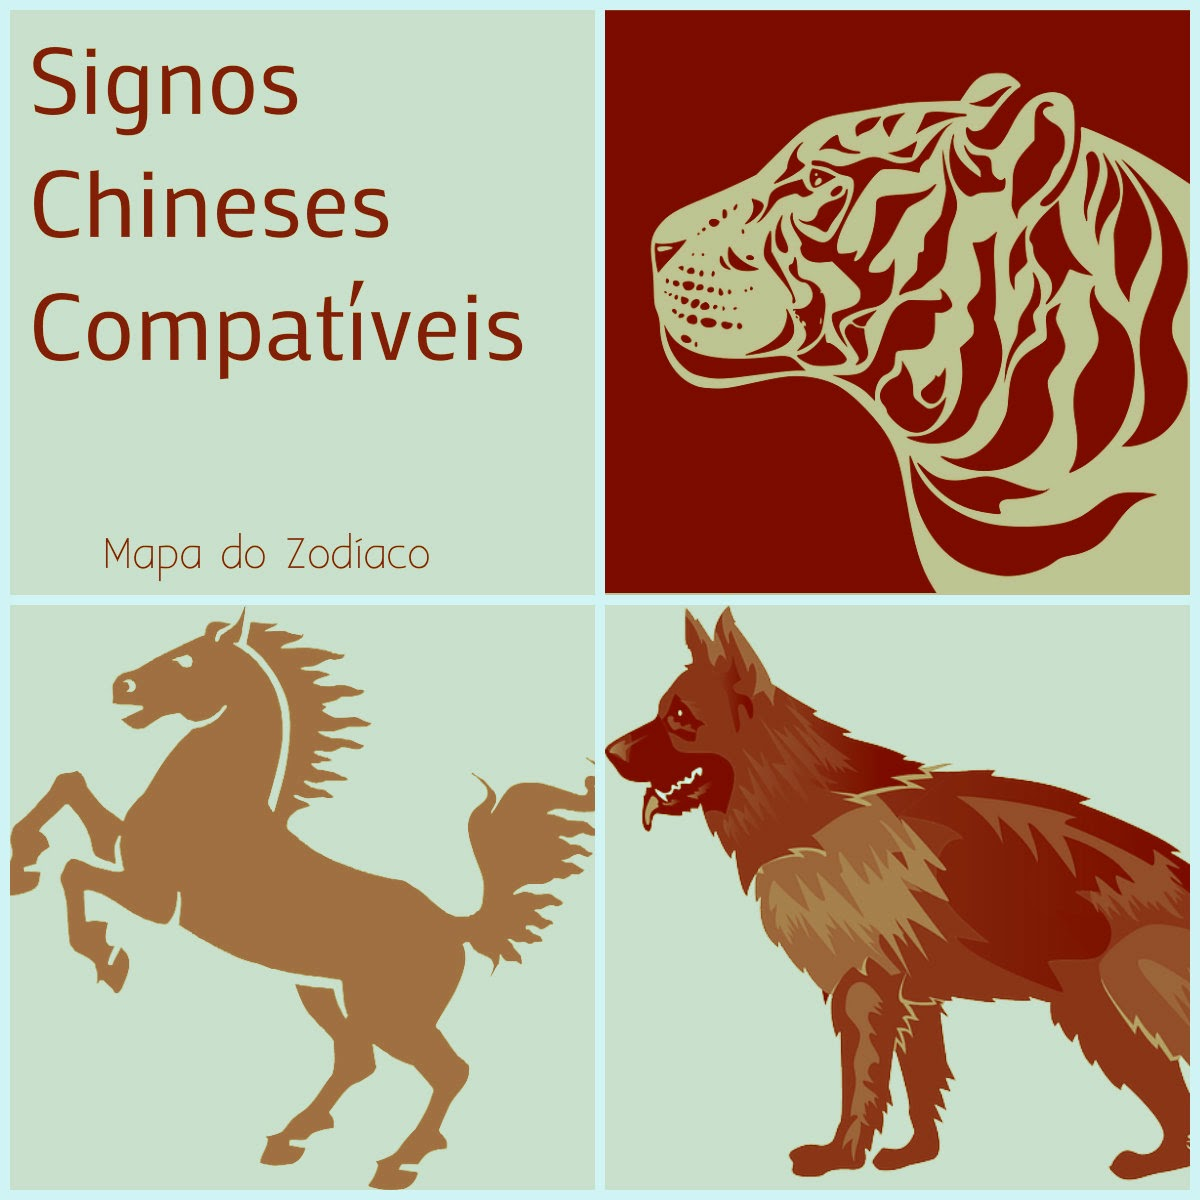 signos chineses mais compativeis